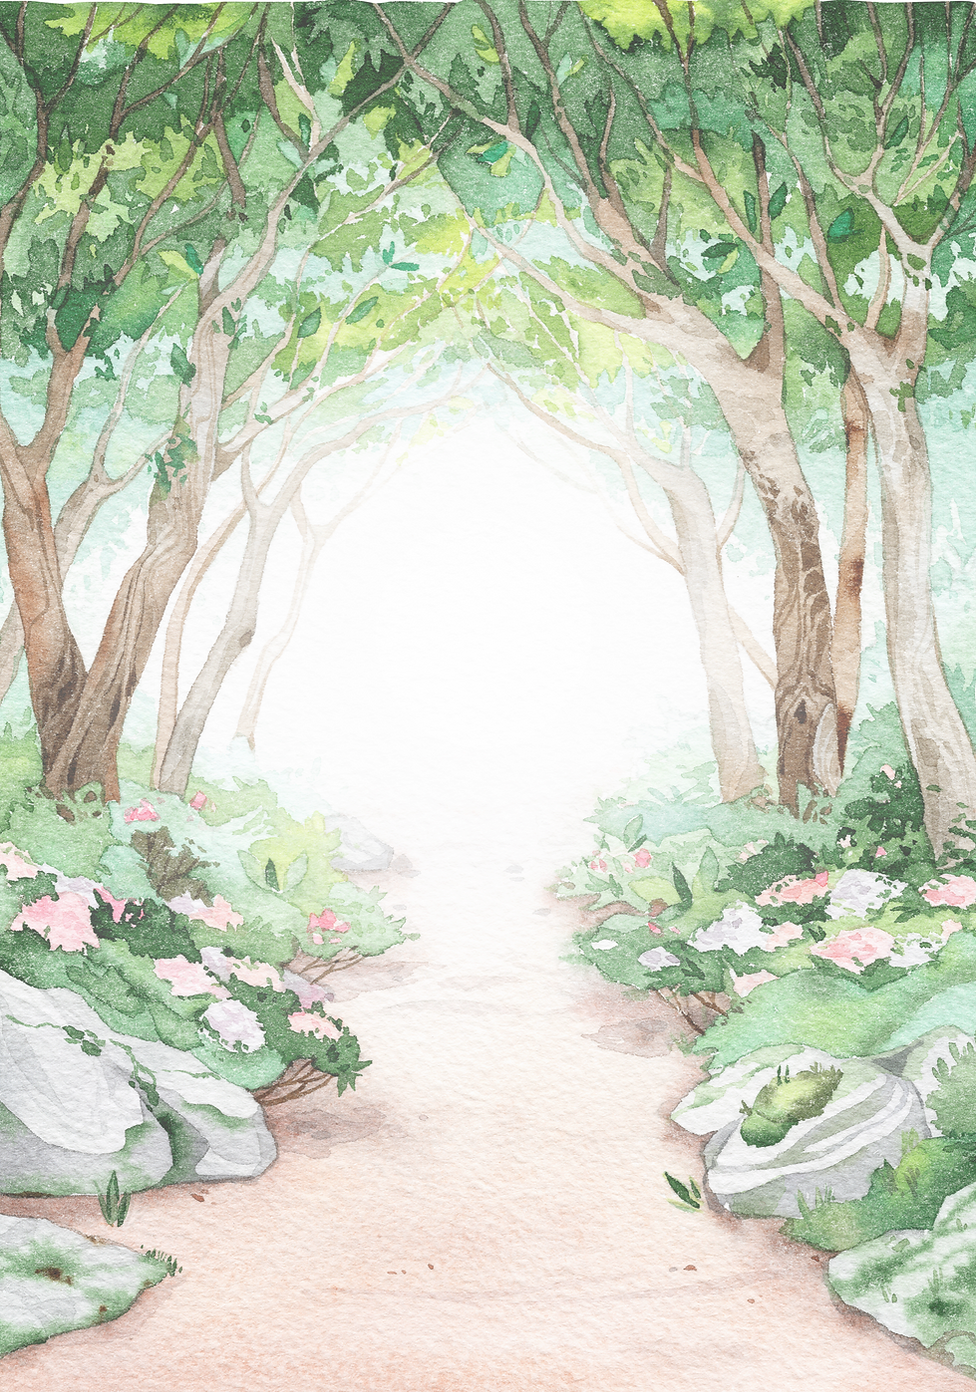 forest%20pathway%20background%20-%20more